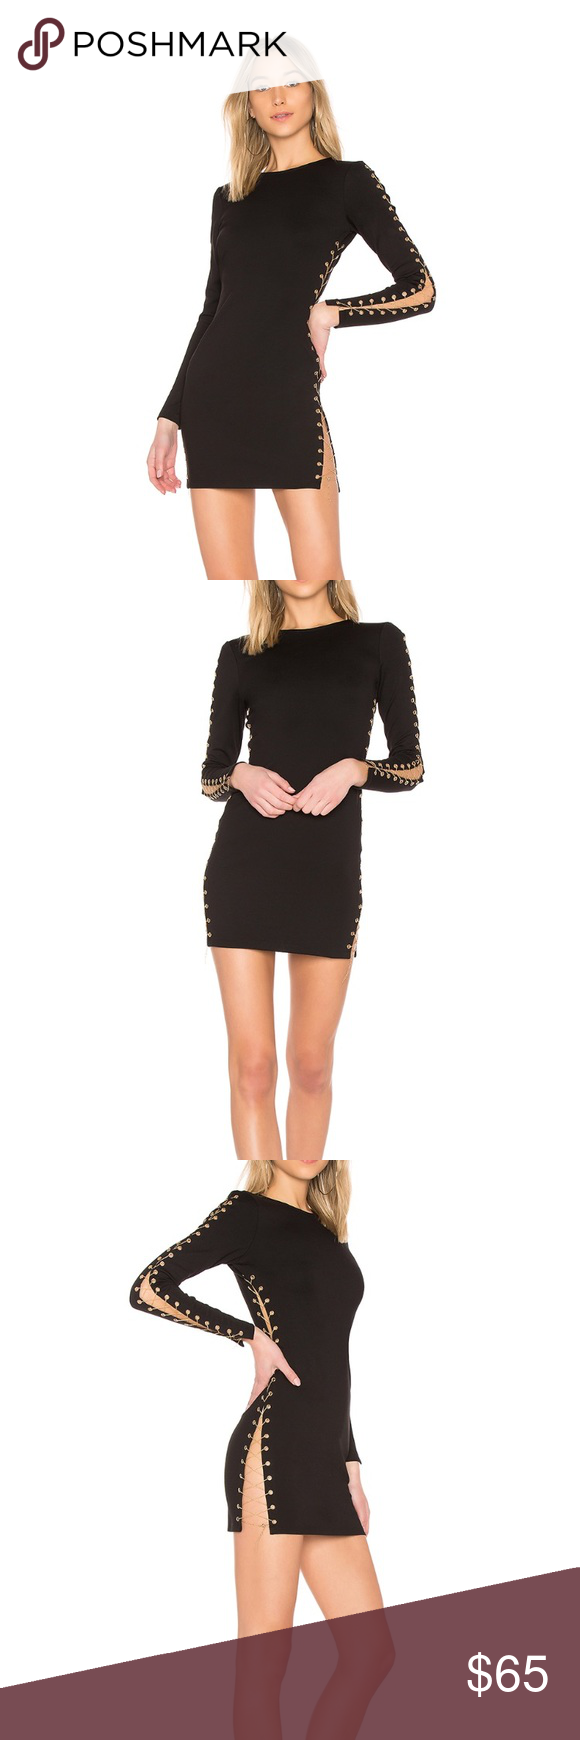 fa4929900729 Andy Chain bodycon dress Amazing LBD with lace up chain detail. Only worn  once. Size large but sits like a medium! By The Way Dresses Mini